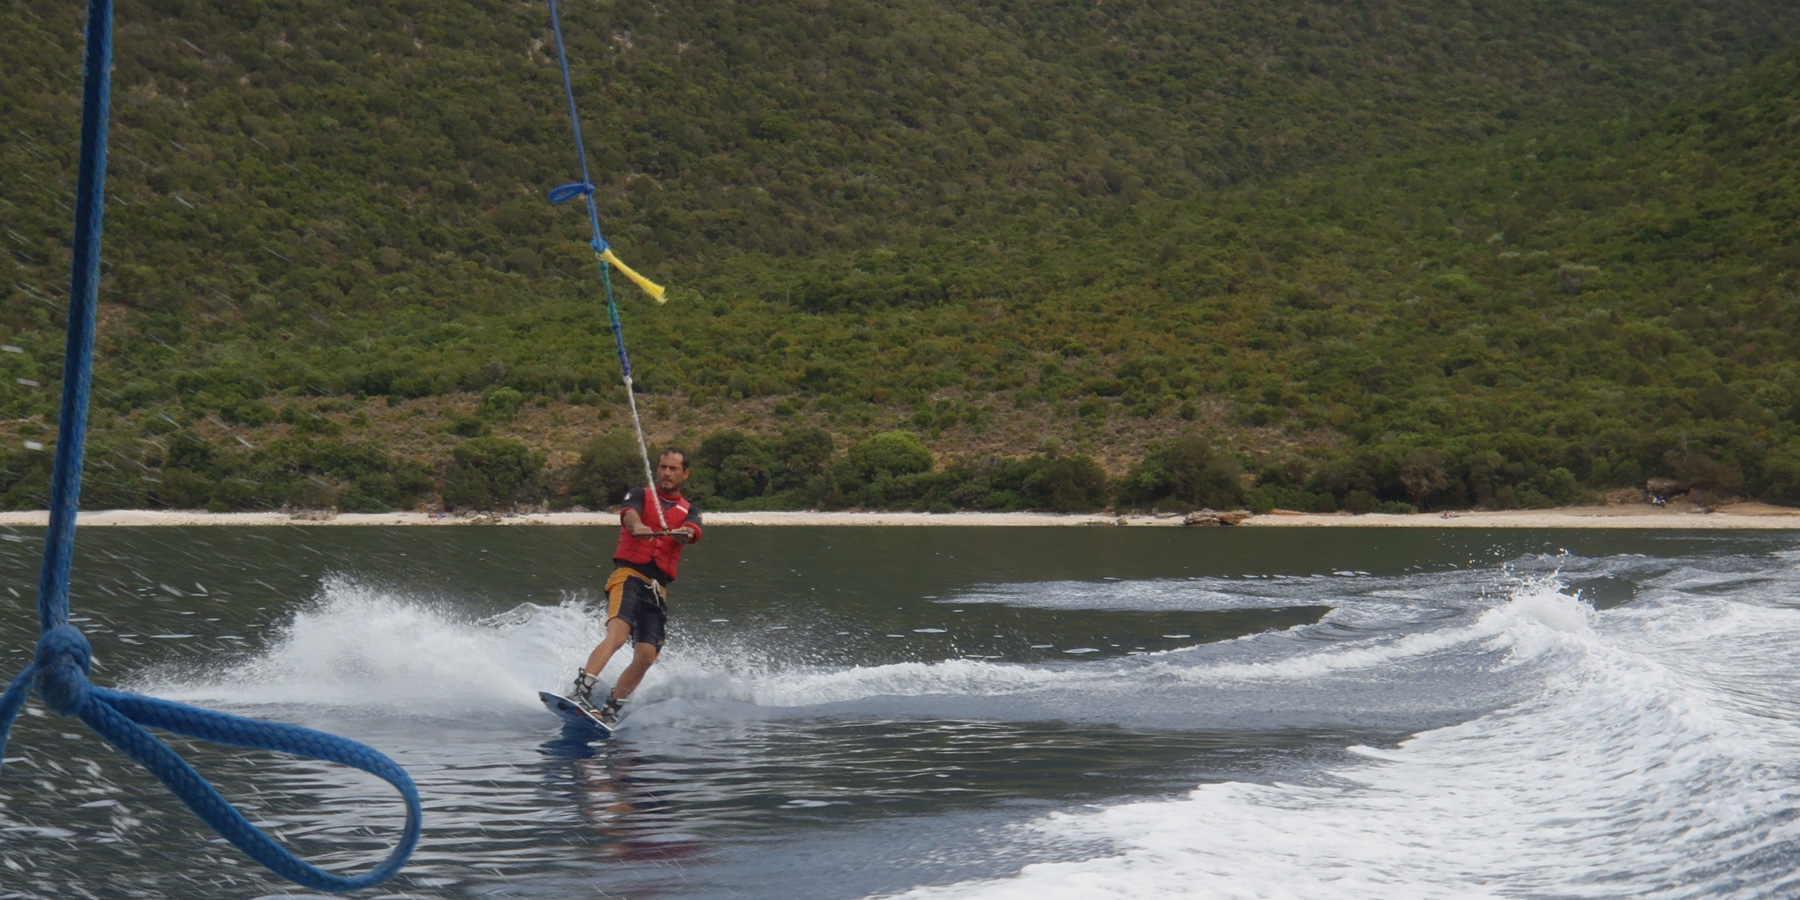 kefalonia_watersorts_wakeboard_02